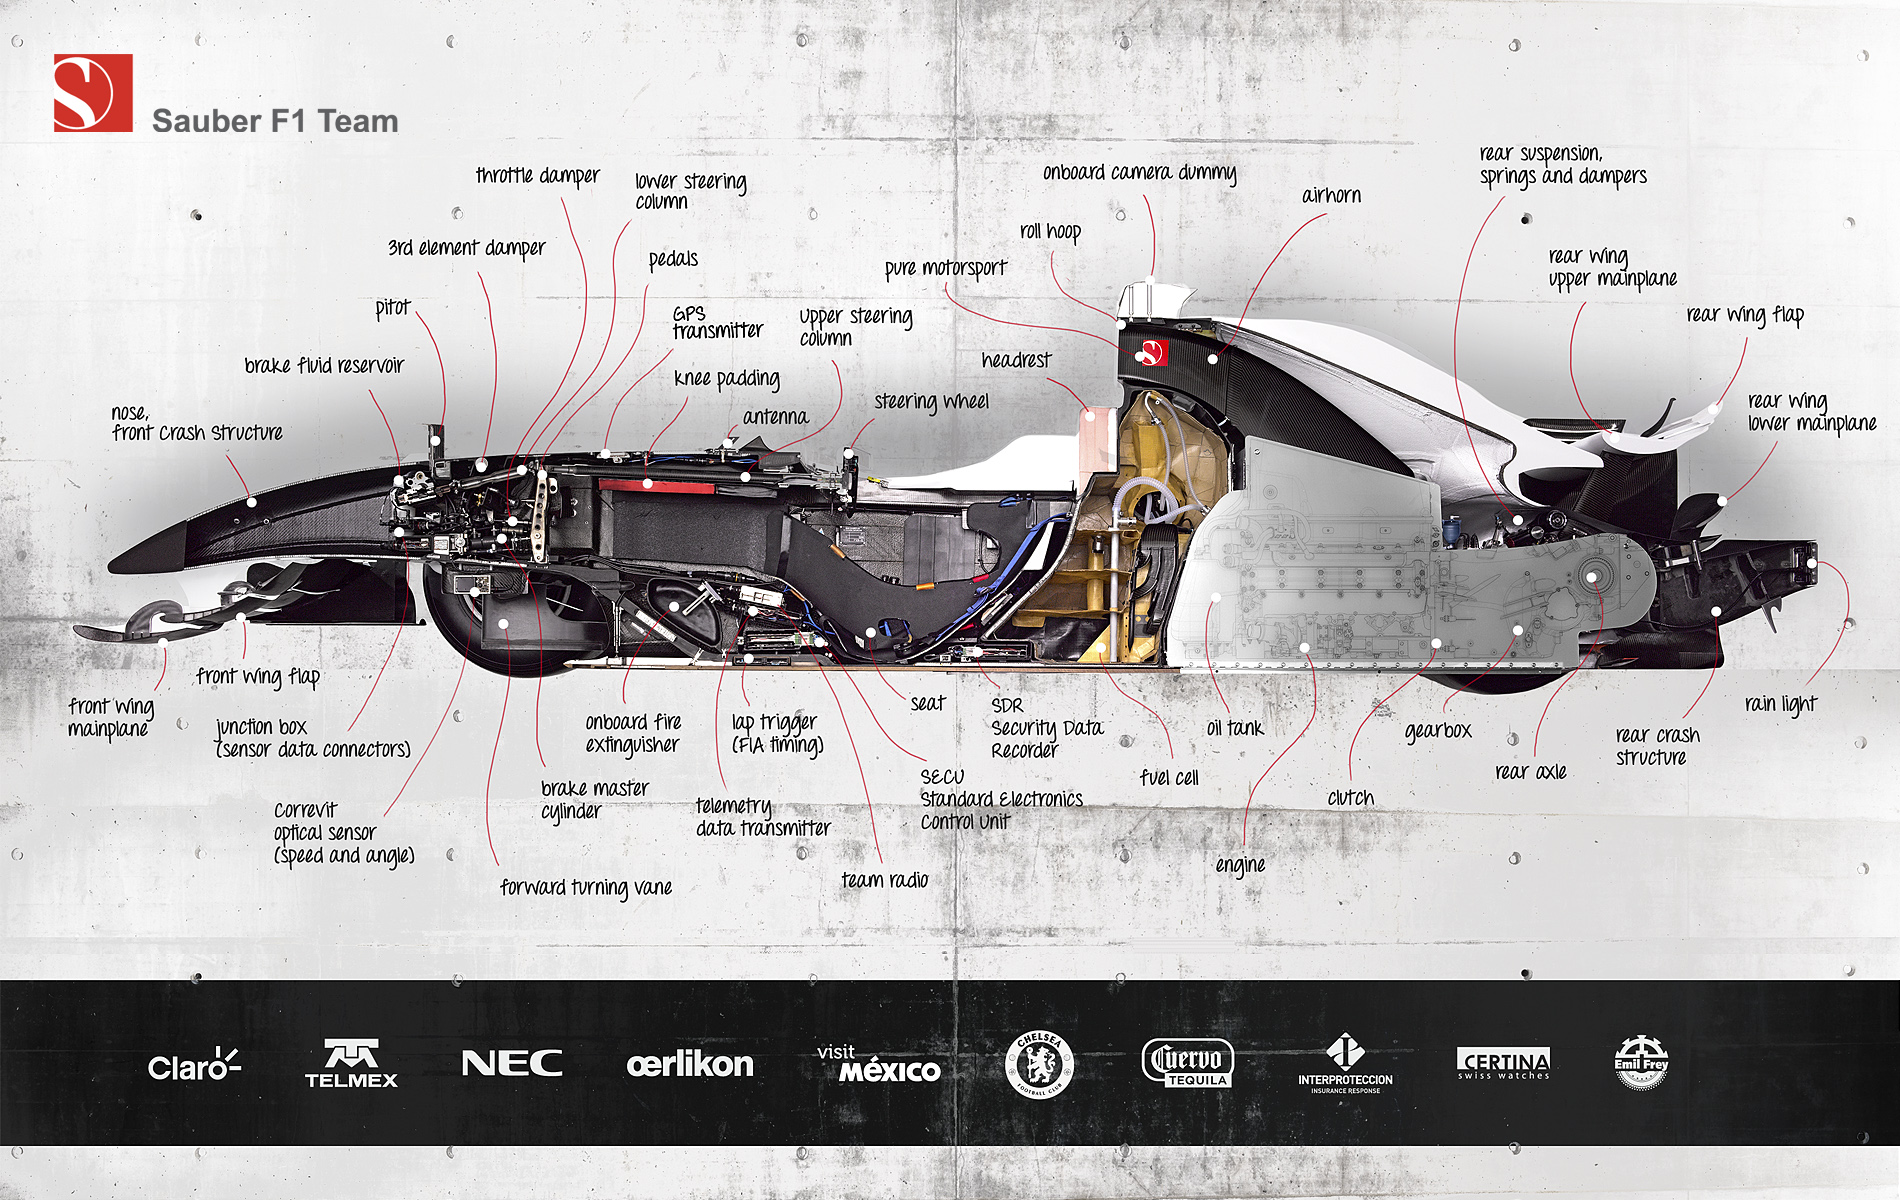 hight resolution of sauber f1 cutaway image all the fastidious details